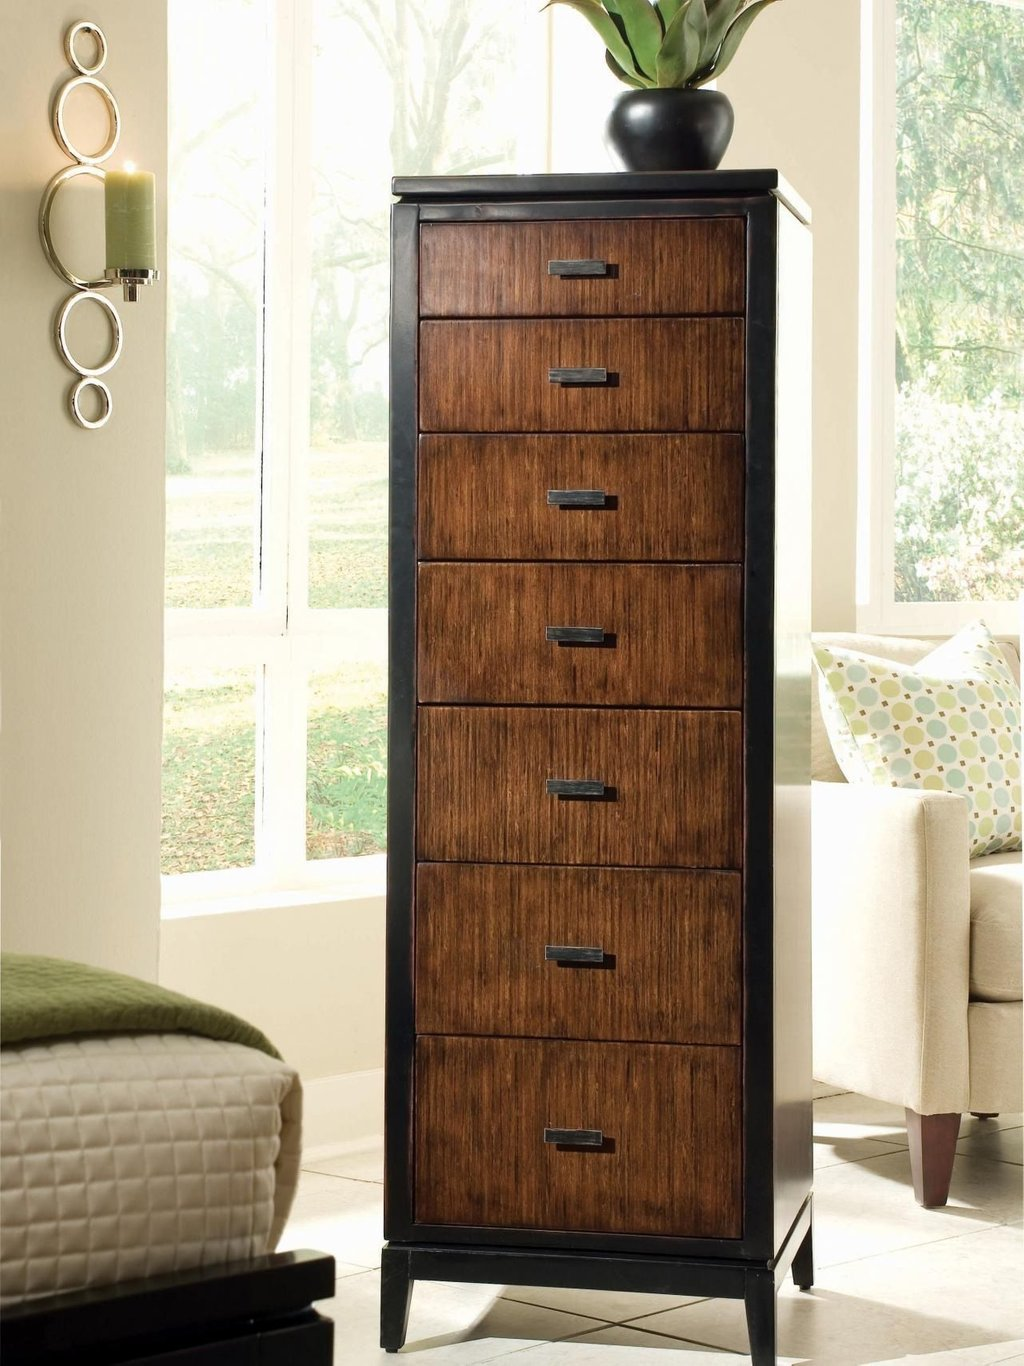 Awesome Tall Narrow Dresser Furniture Narrow Dresser Decorate A Tall Narrow Dresser